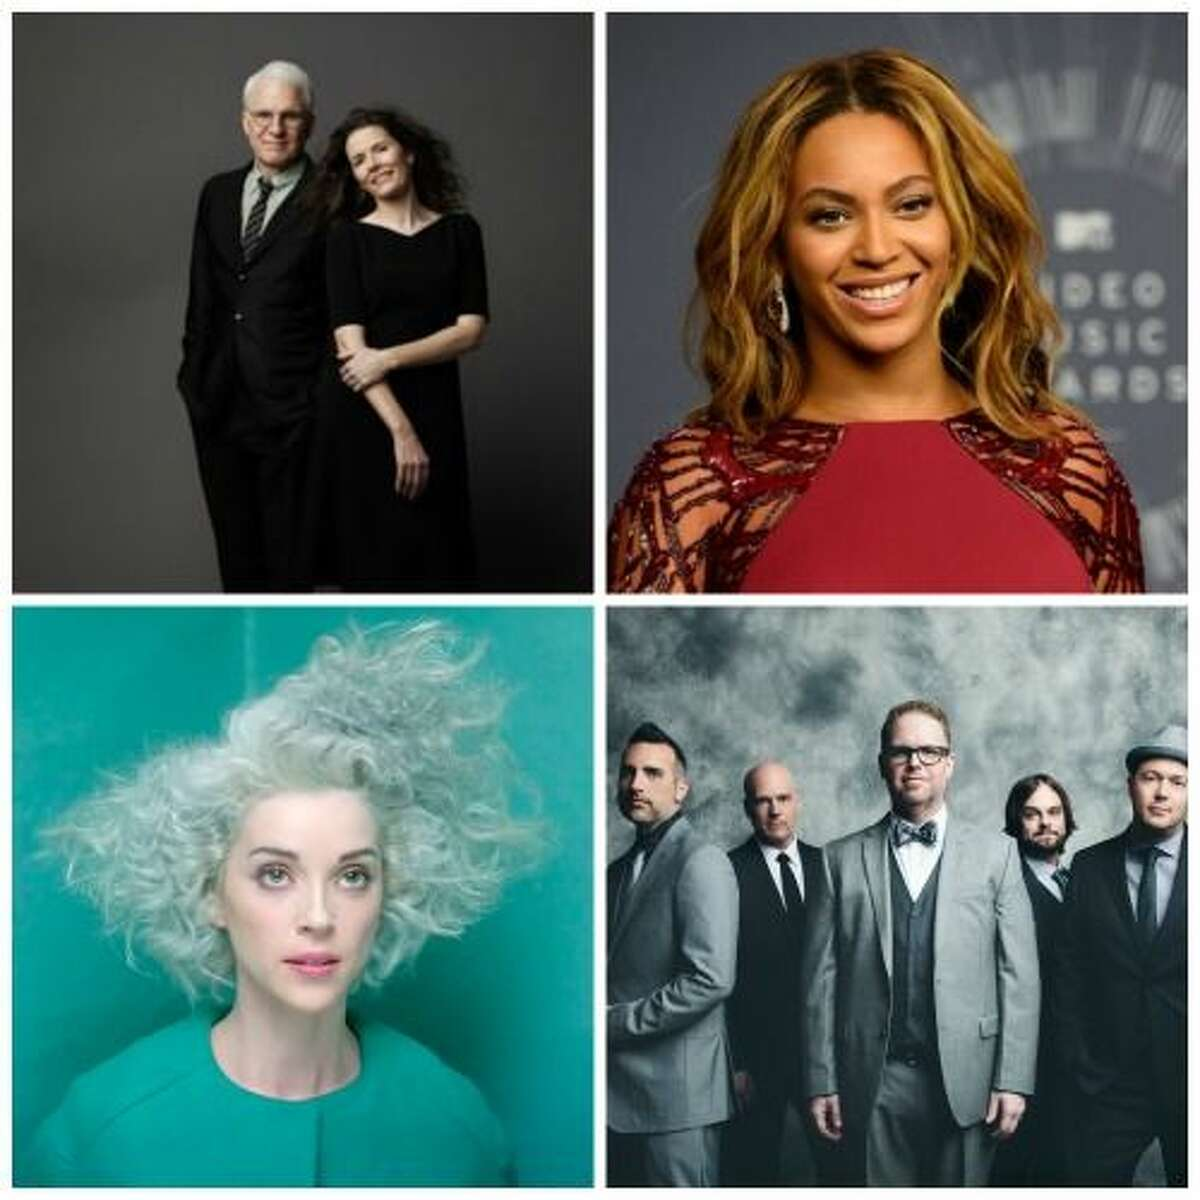 Texas represents at the 2015 Grammys with a bevy of nominees including Steve Martin and Edie Brickell, Beyonce, St. Vincent and MercyMe who all hail from the Lone Star State.